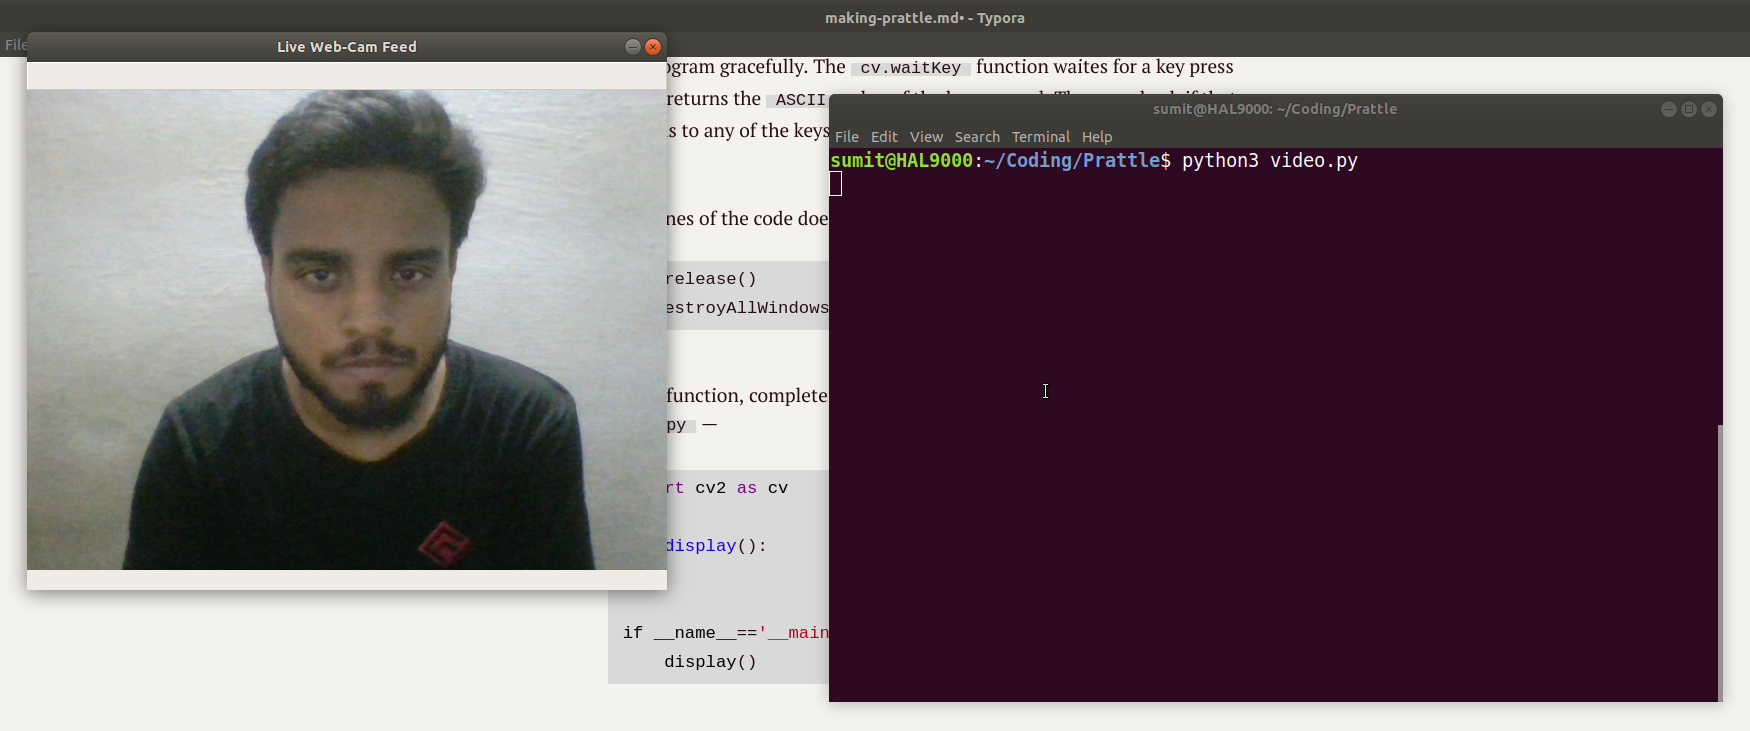 Making Prattle: A Fully-fledged P2P Video Chat Application Using